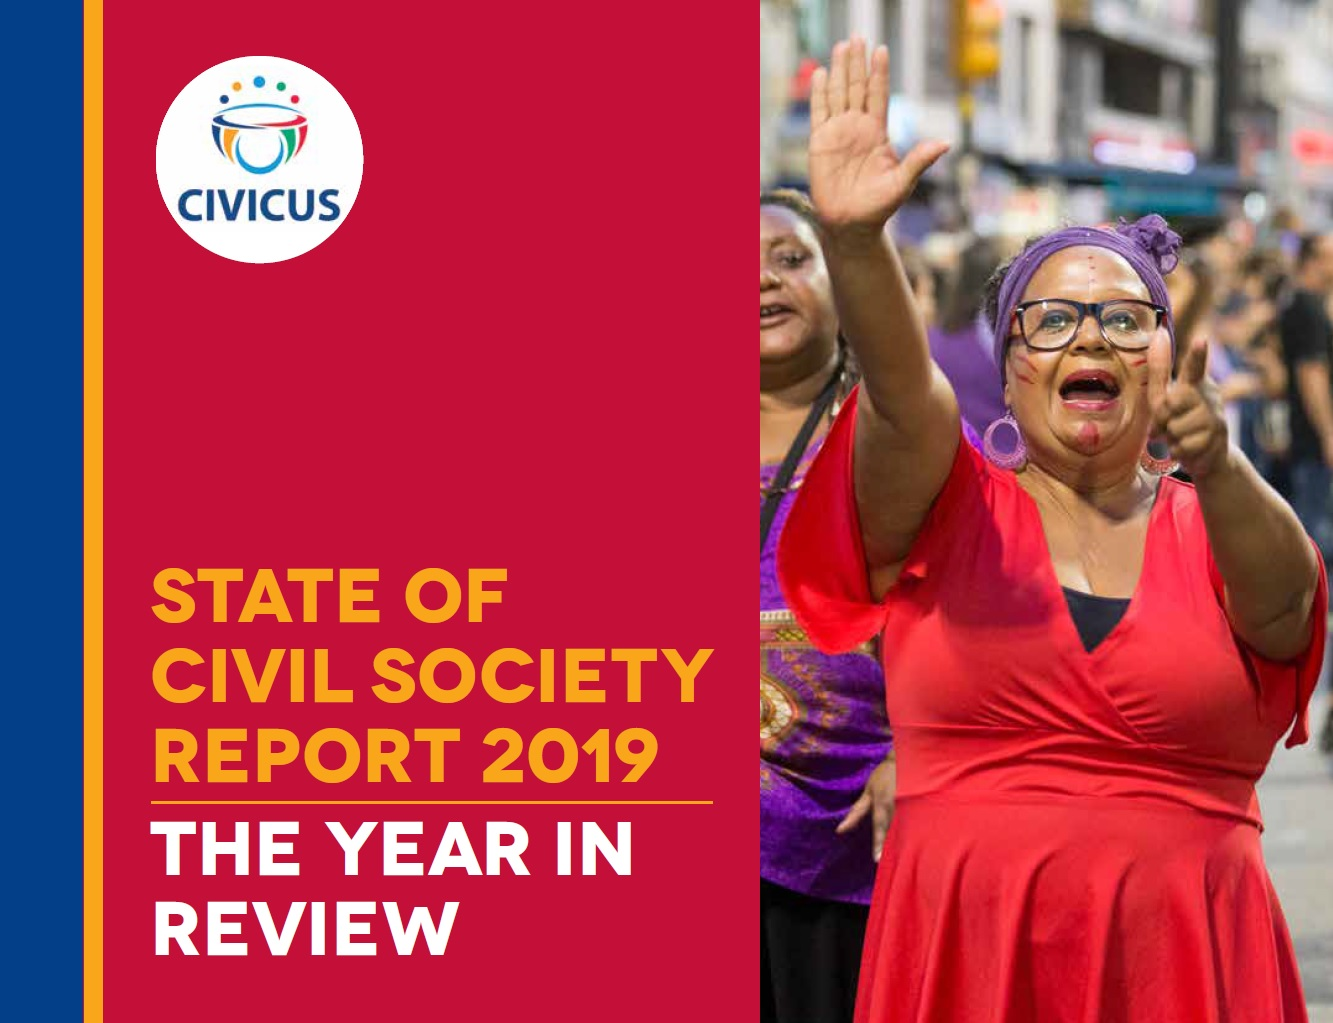 State of Civil Society Report